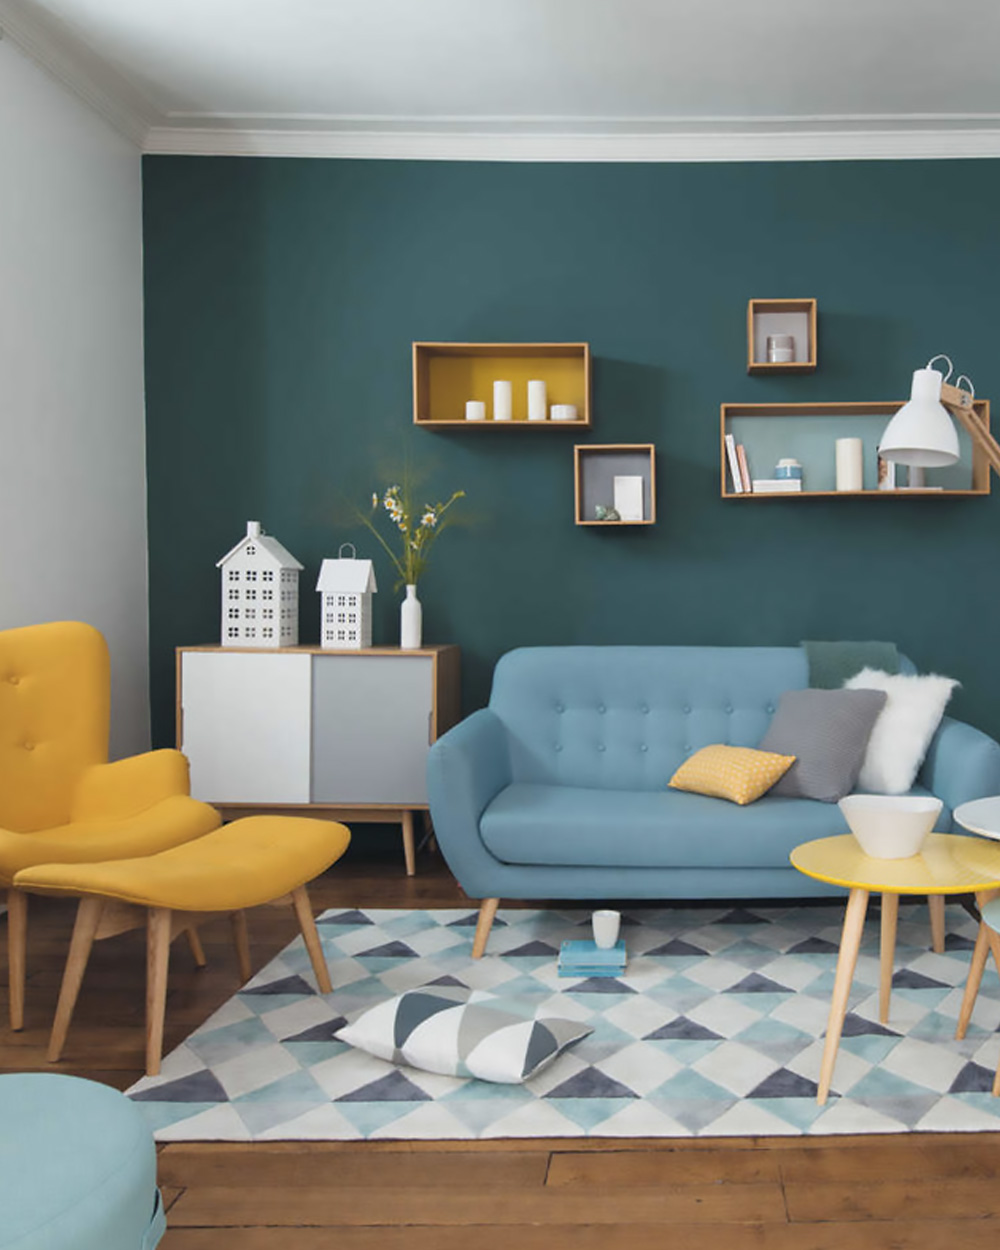 deco scandinave salon jaune bleu